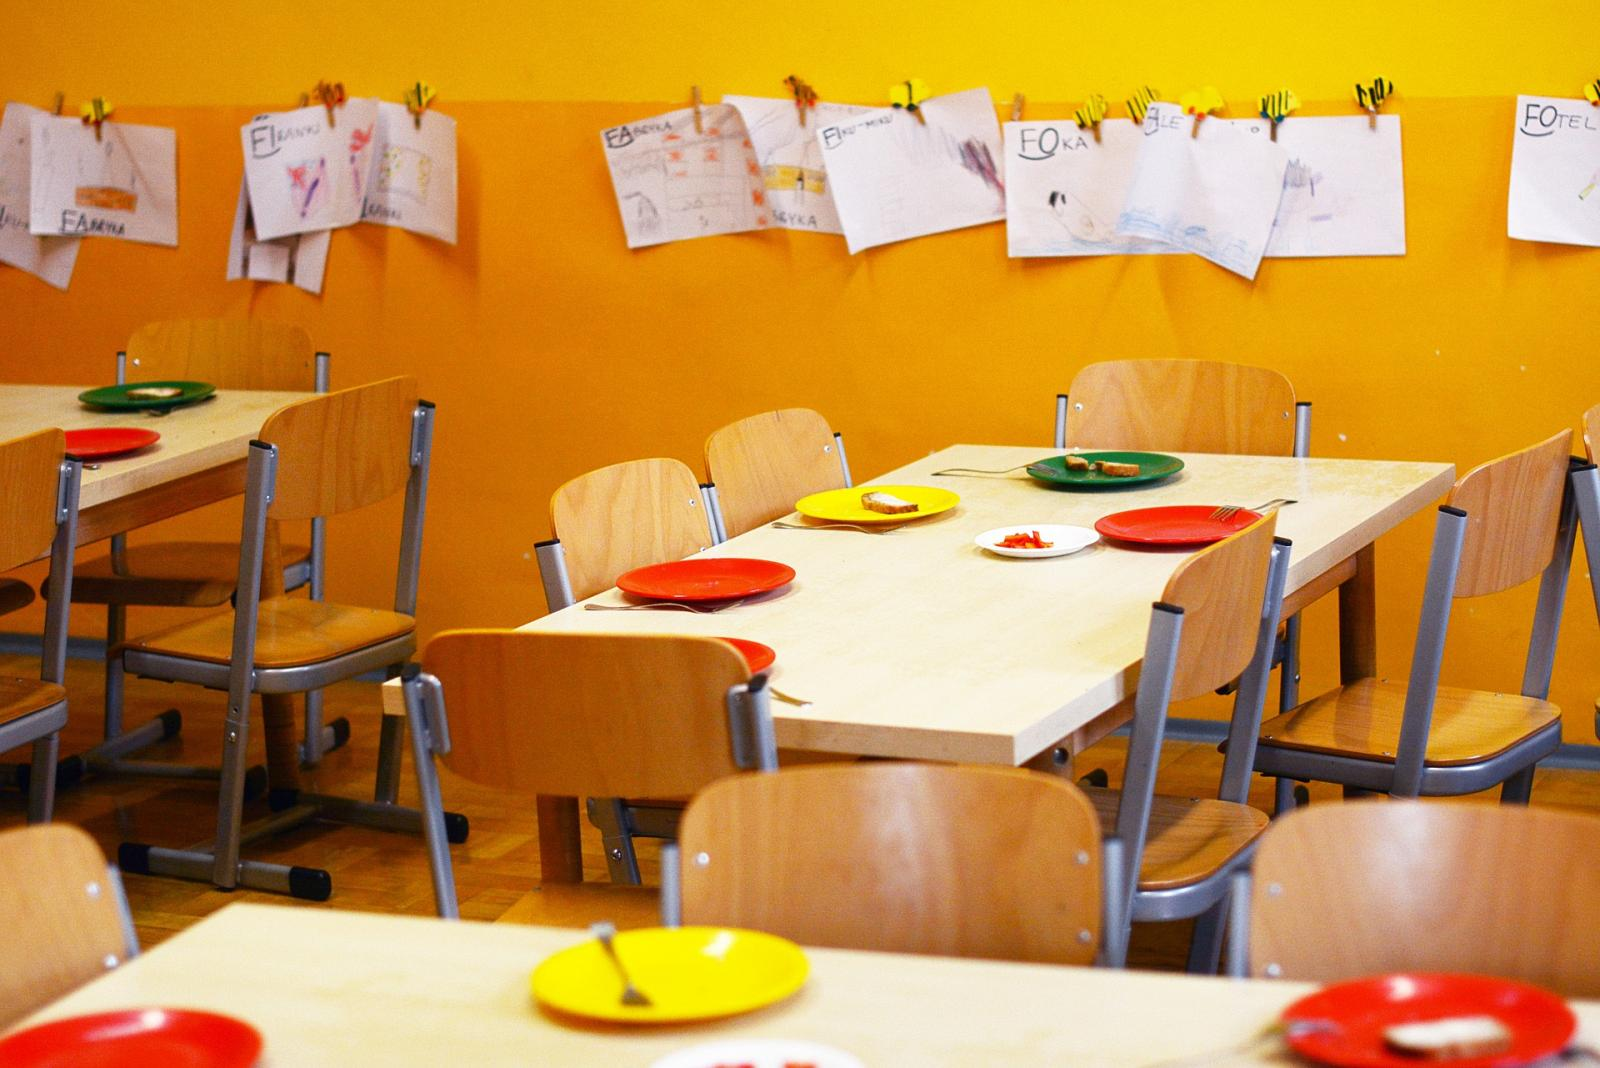 Snacks in a primary school. Photo credit: Pixabay